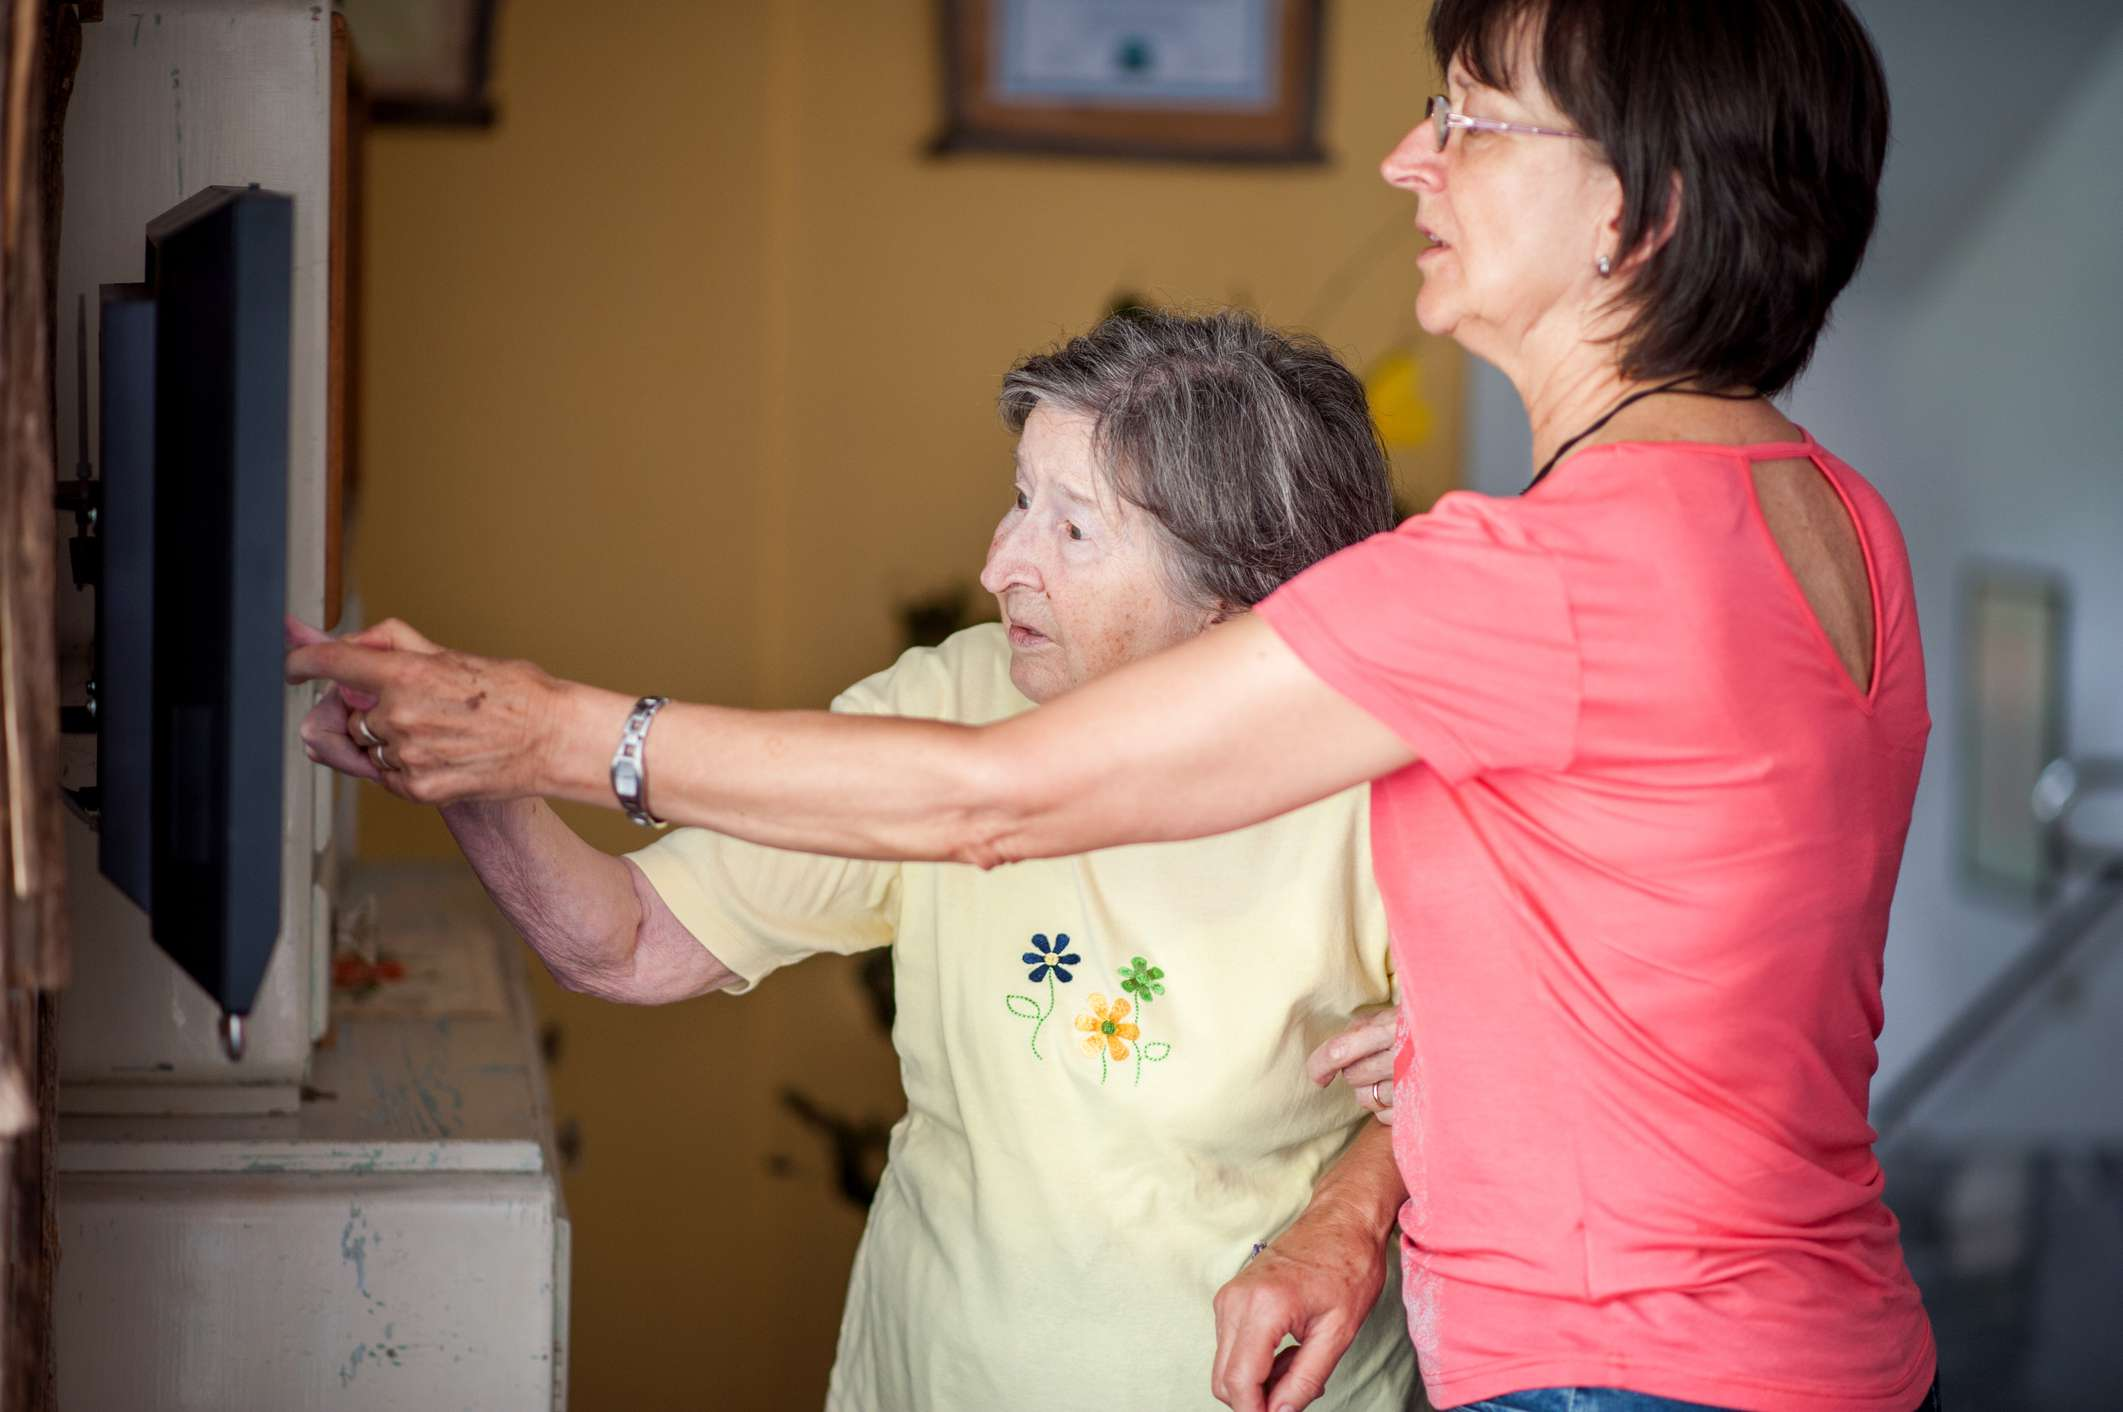 A woman receiving at home healthcare